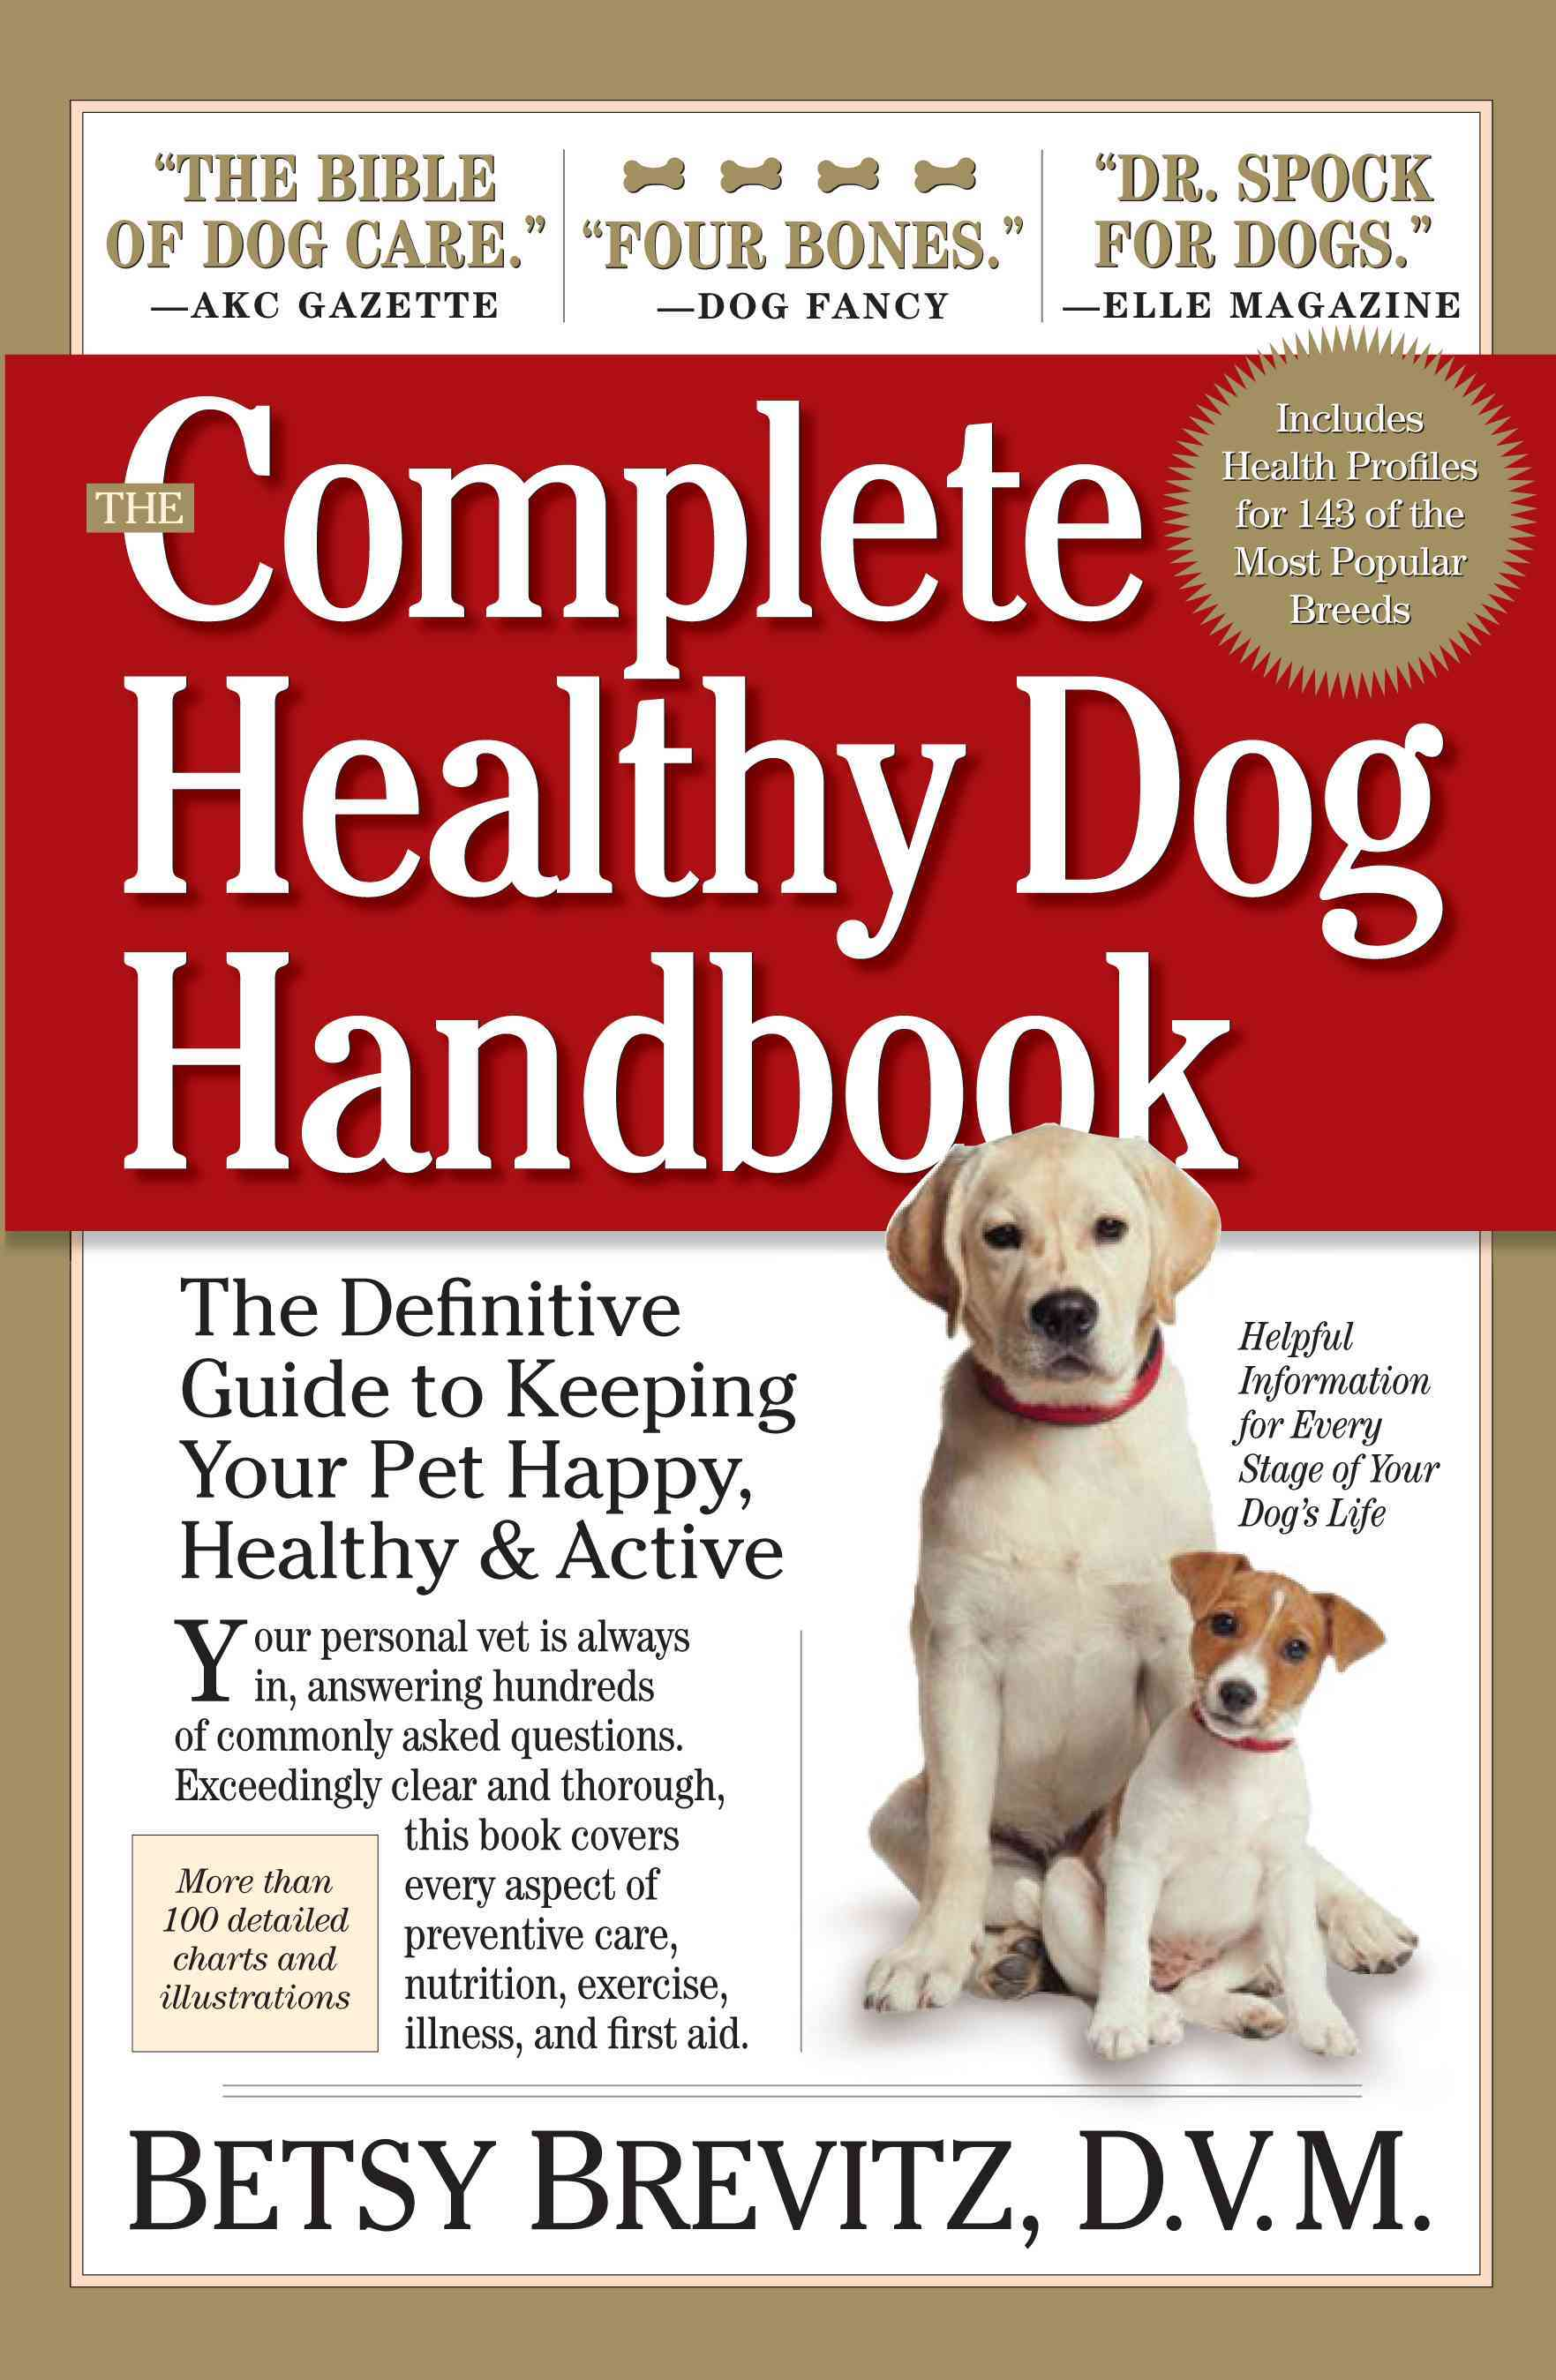 The Complete Healthy Dog Handbook: The Definitive Guide to Keeping Your Pet Happy, Healthy & Active (Paperback)